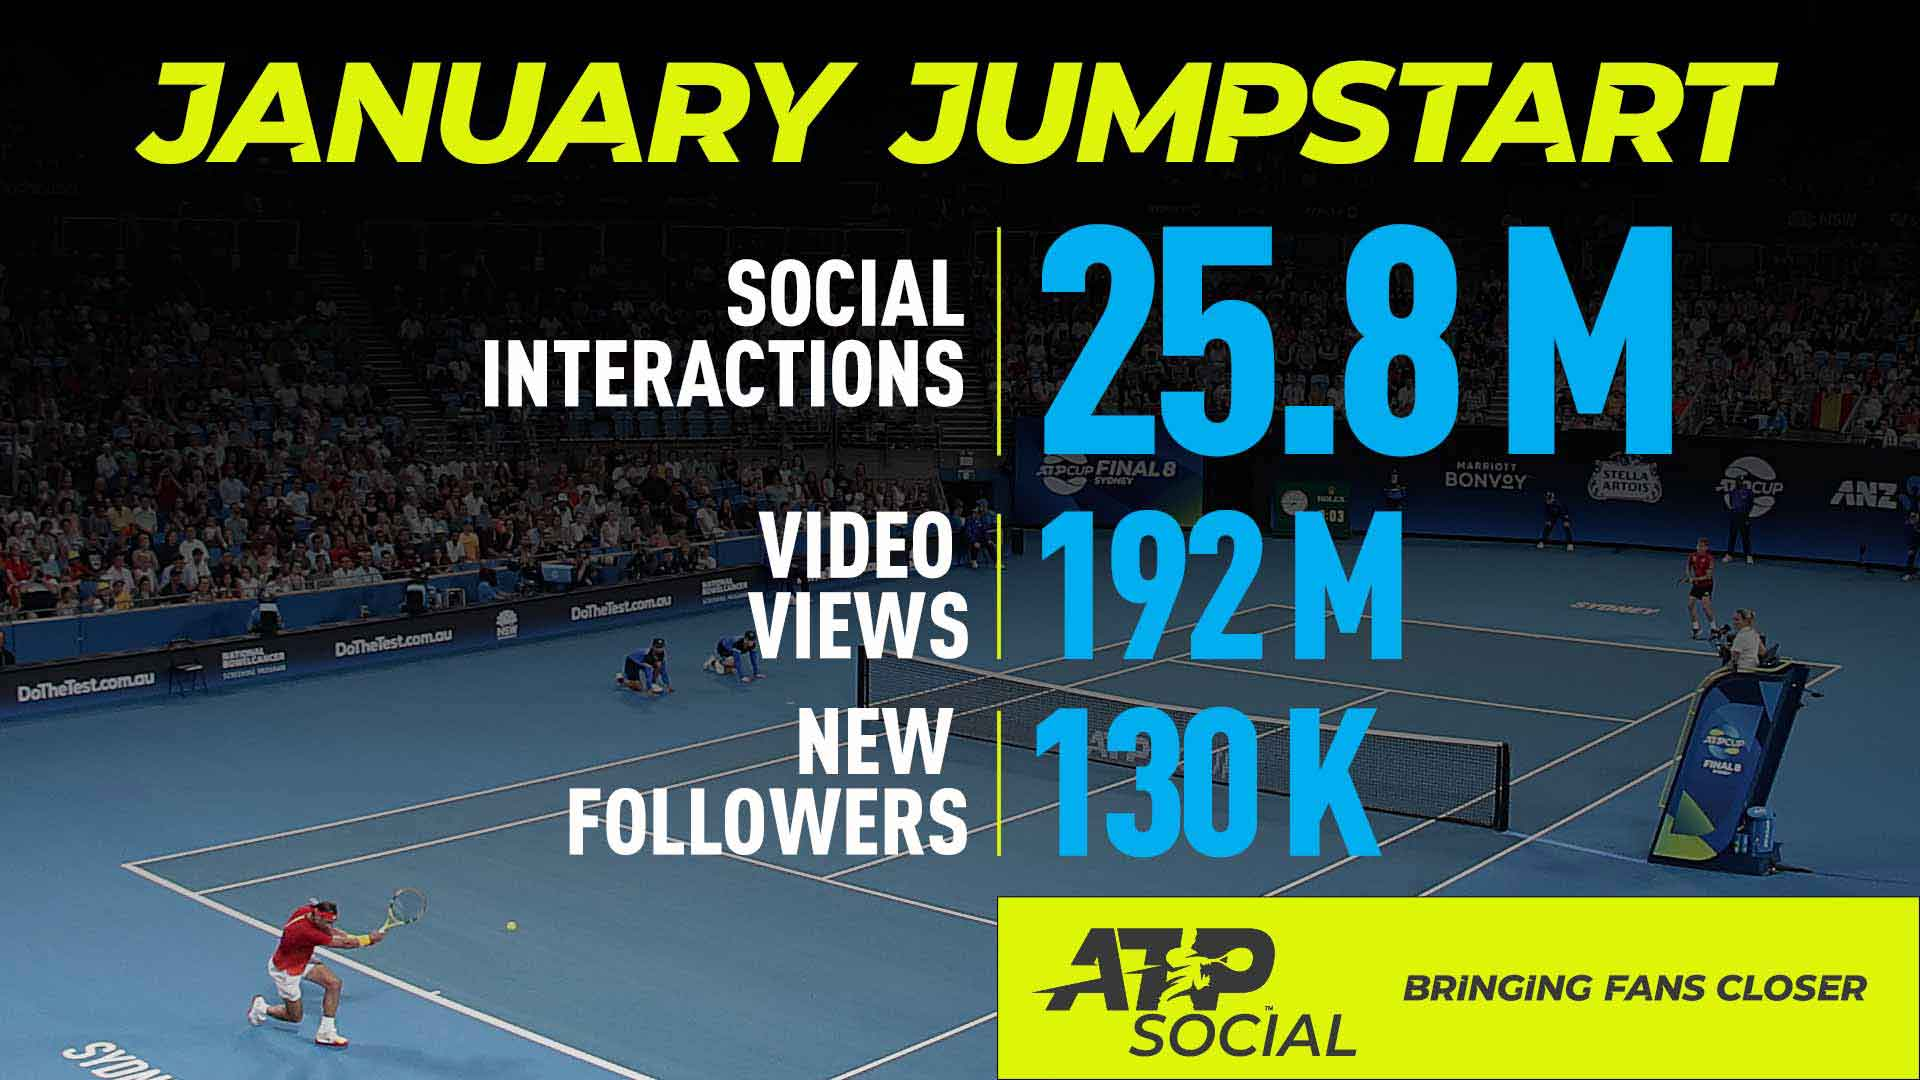 ATP digital channels